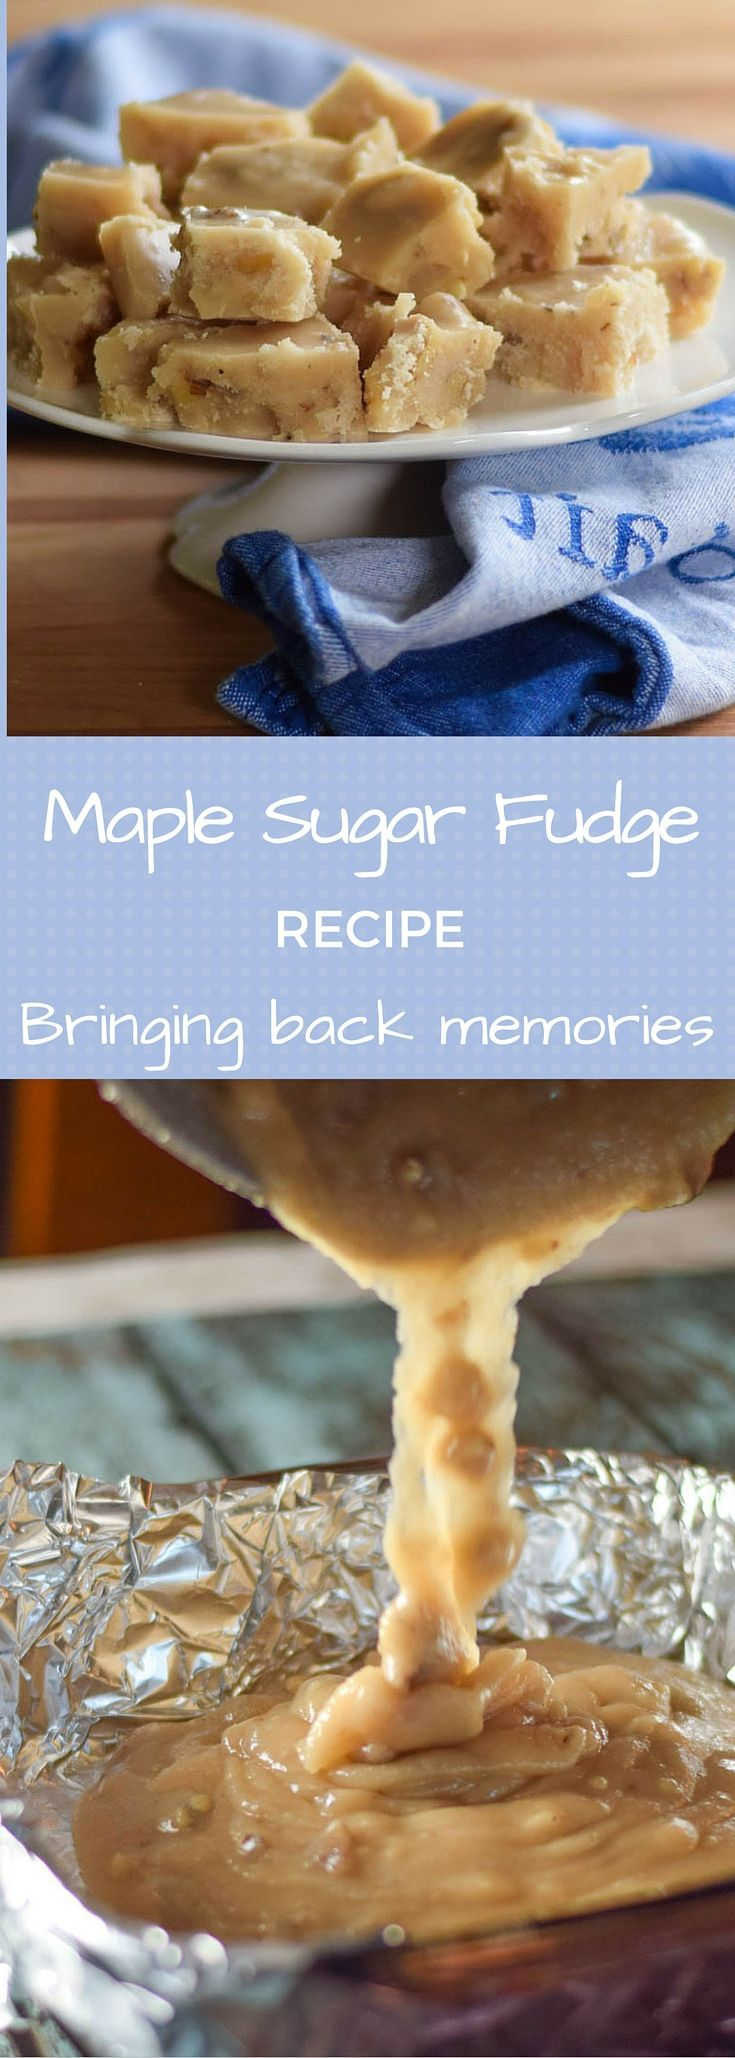 Maple Sugar Fudge Recipe - old fashioned candy made with pure maple syrup bringing back memories of childhood summer nights with mom's treat of popcorn and fudge! #SundaySupper